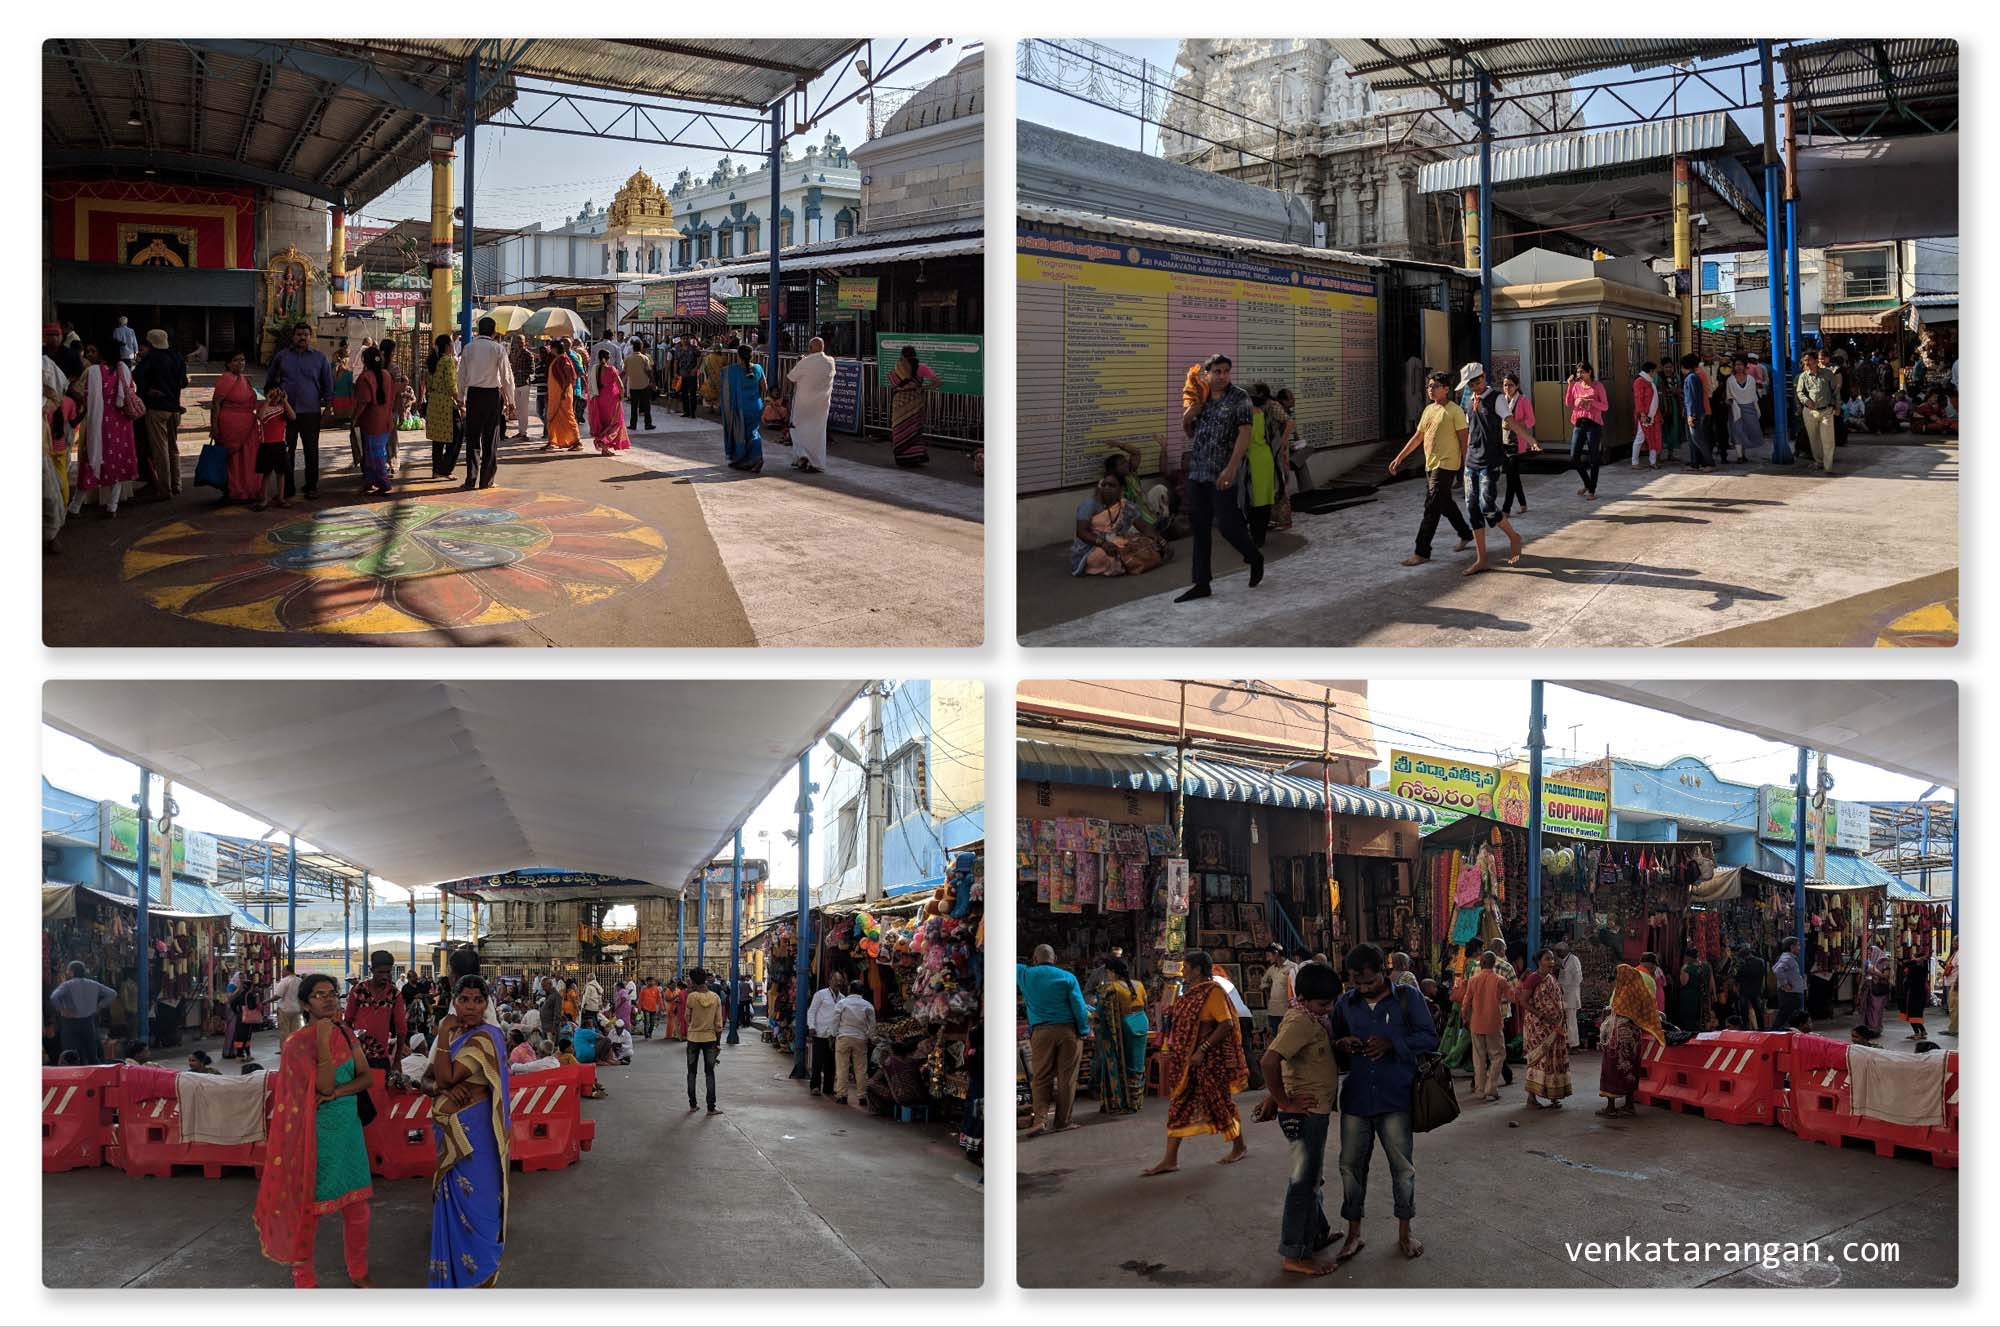 Devotees throng the Sri Padmavathi Temple, Tiruchanur, Tirupati